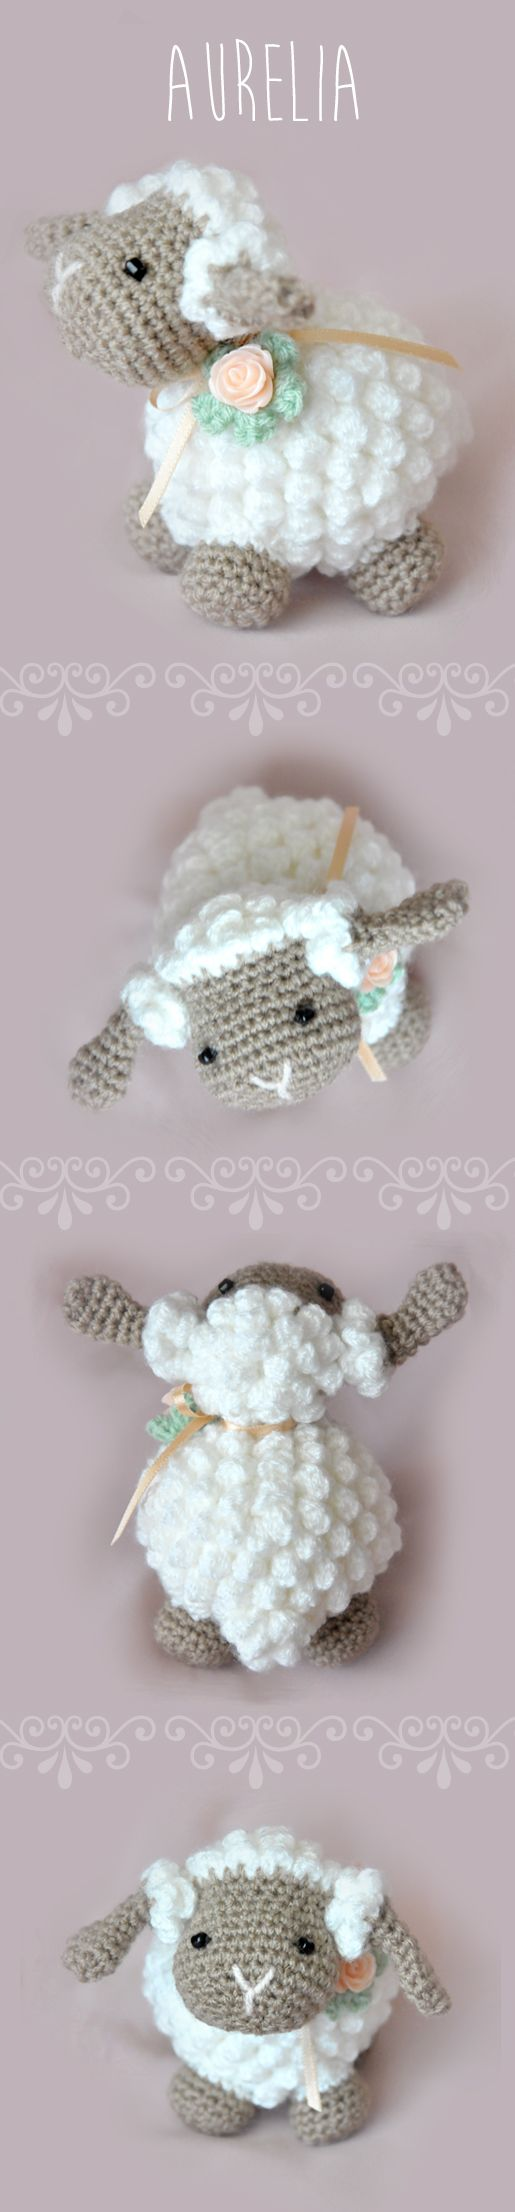 Baby sheep crochet